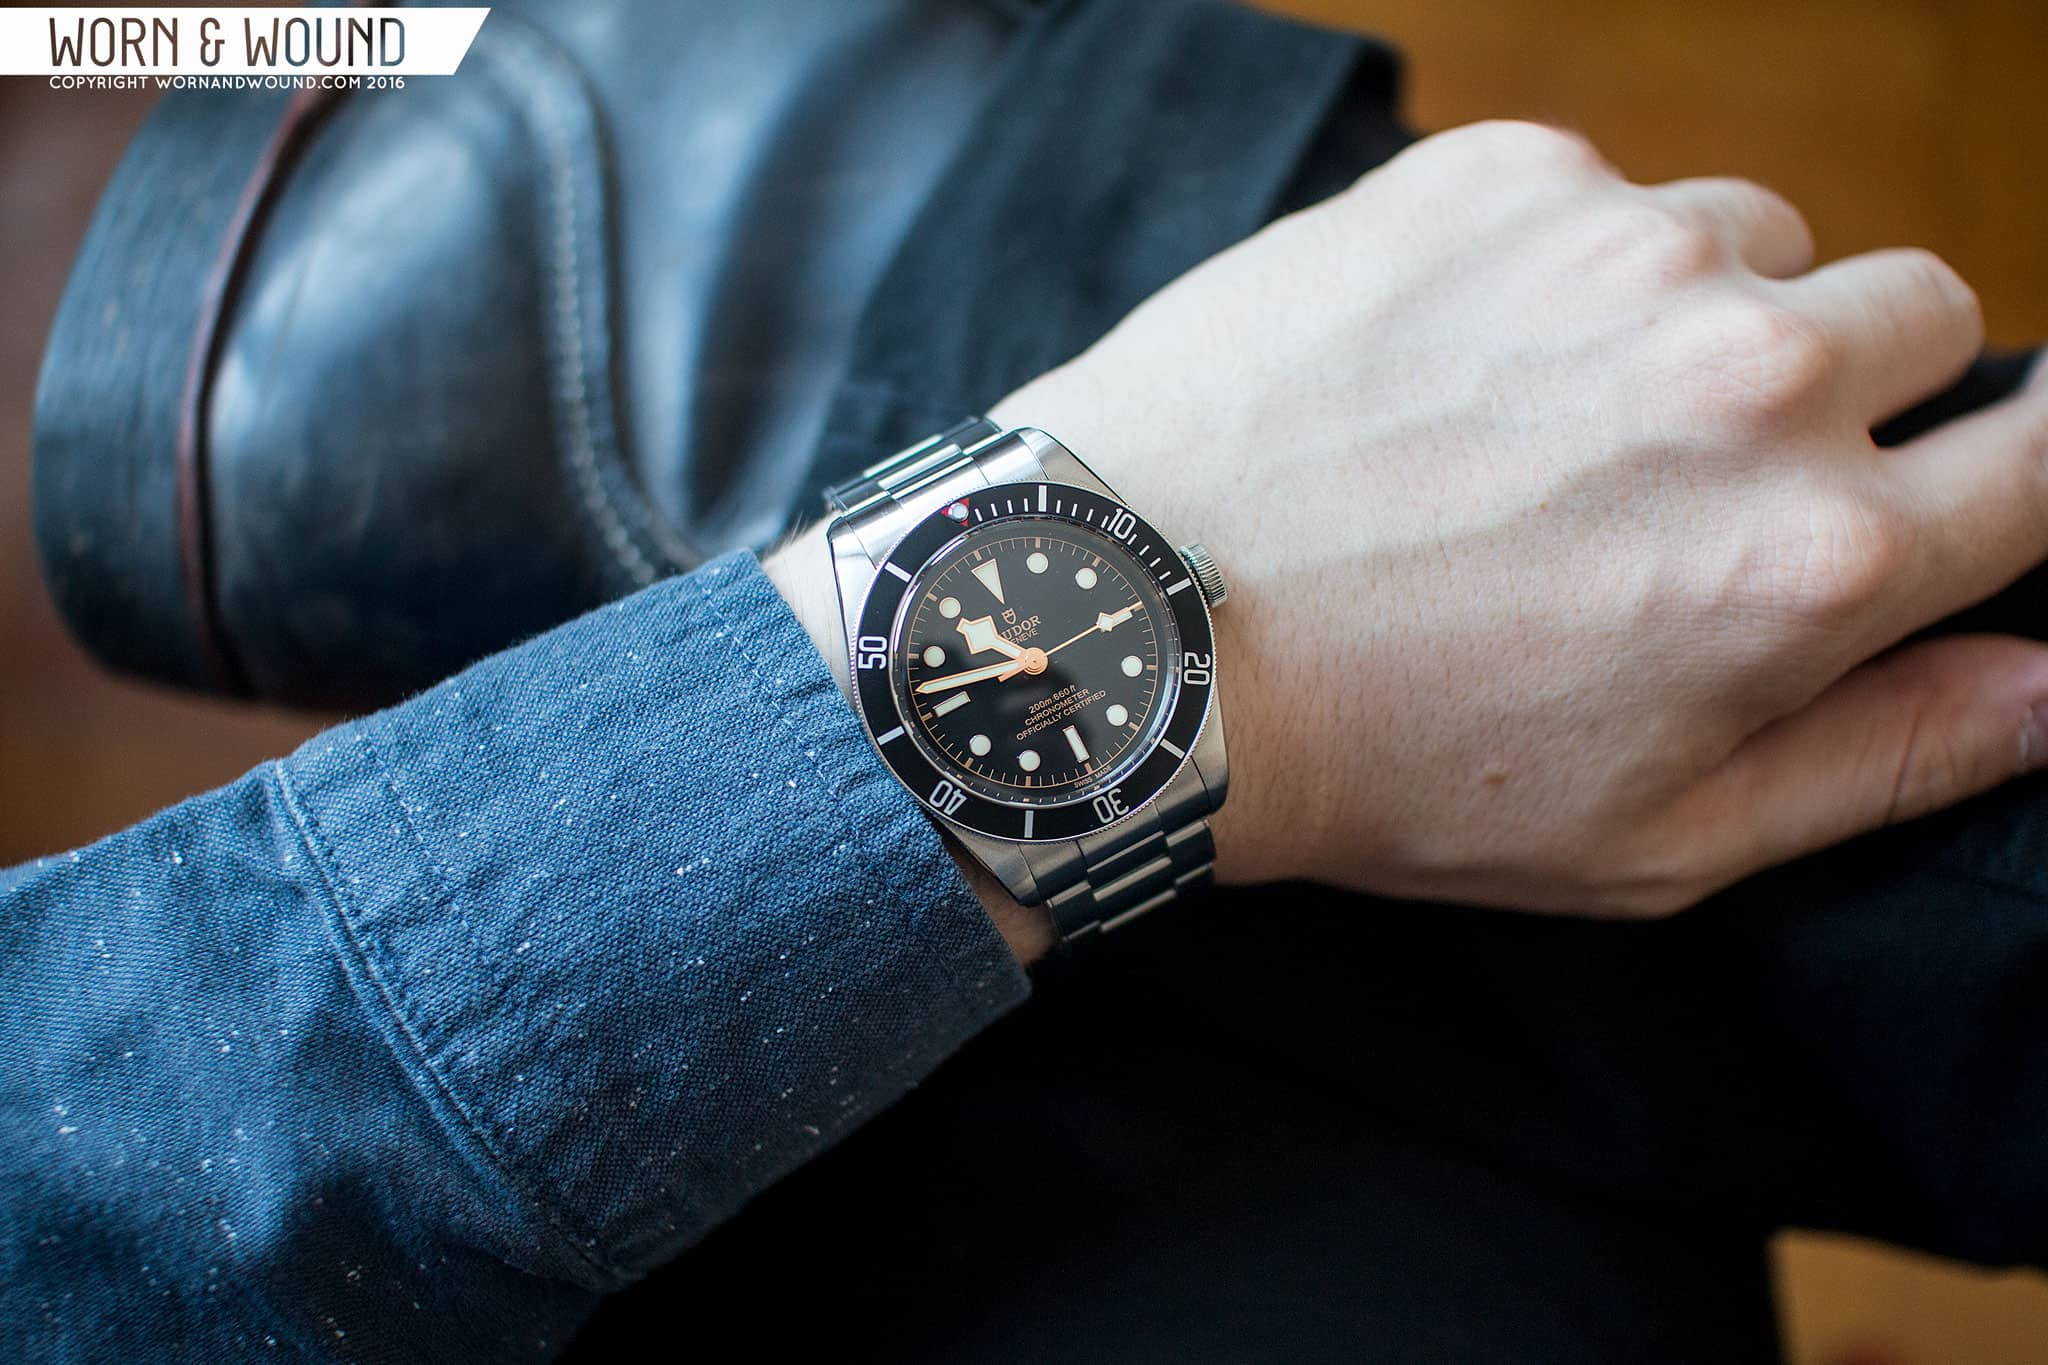 Review Tudor Black Bay Fifty Eight Worn Wound